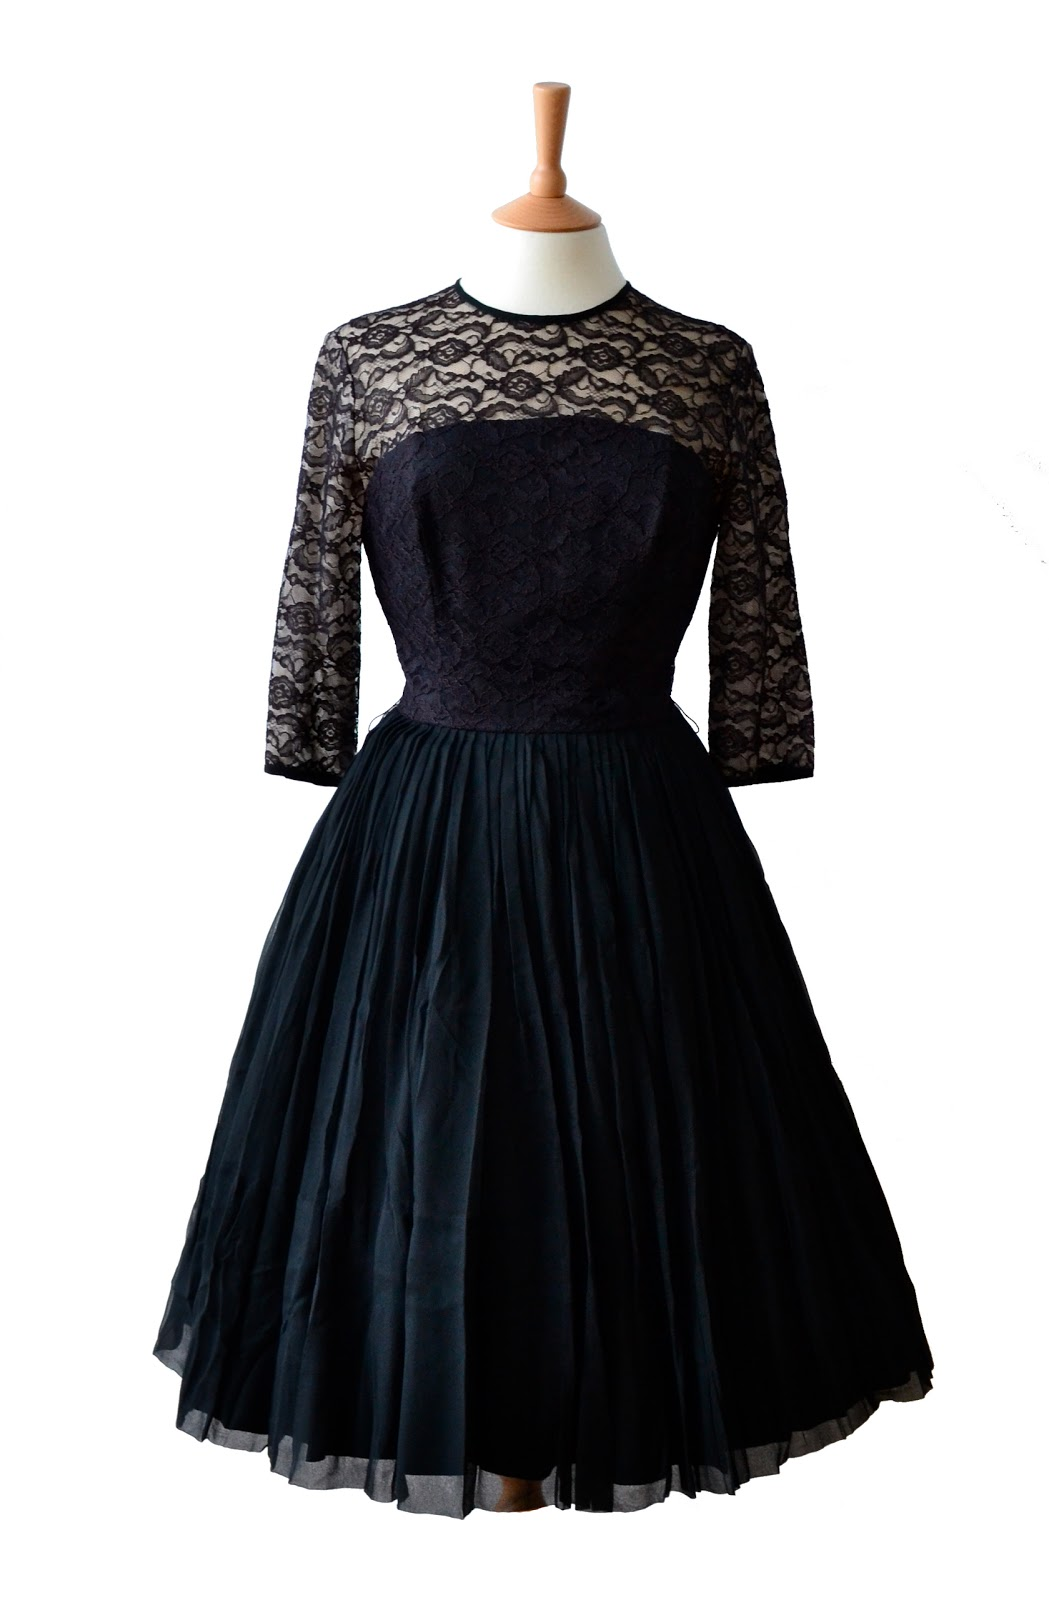 Coming soon...new 1950s vintage dresses!